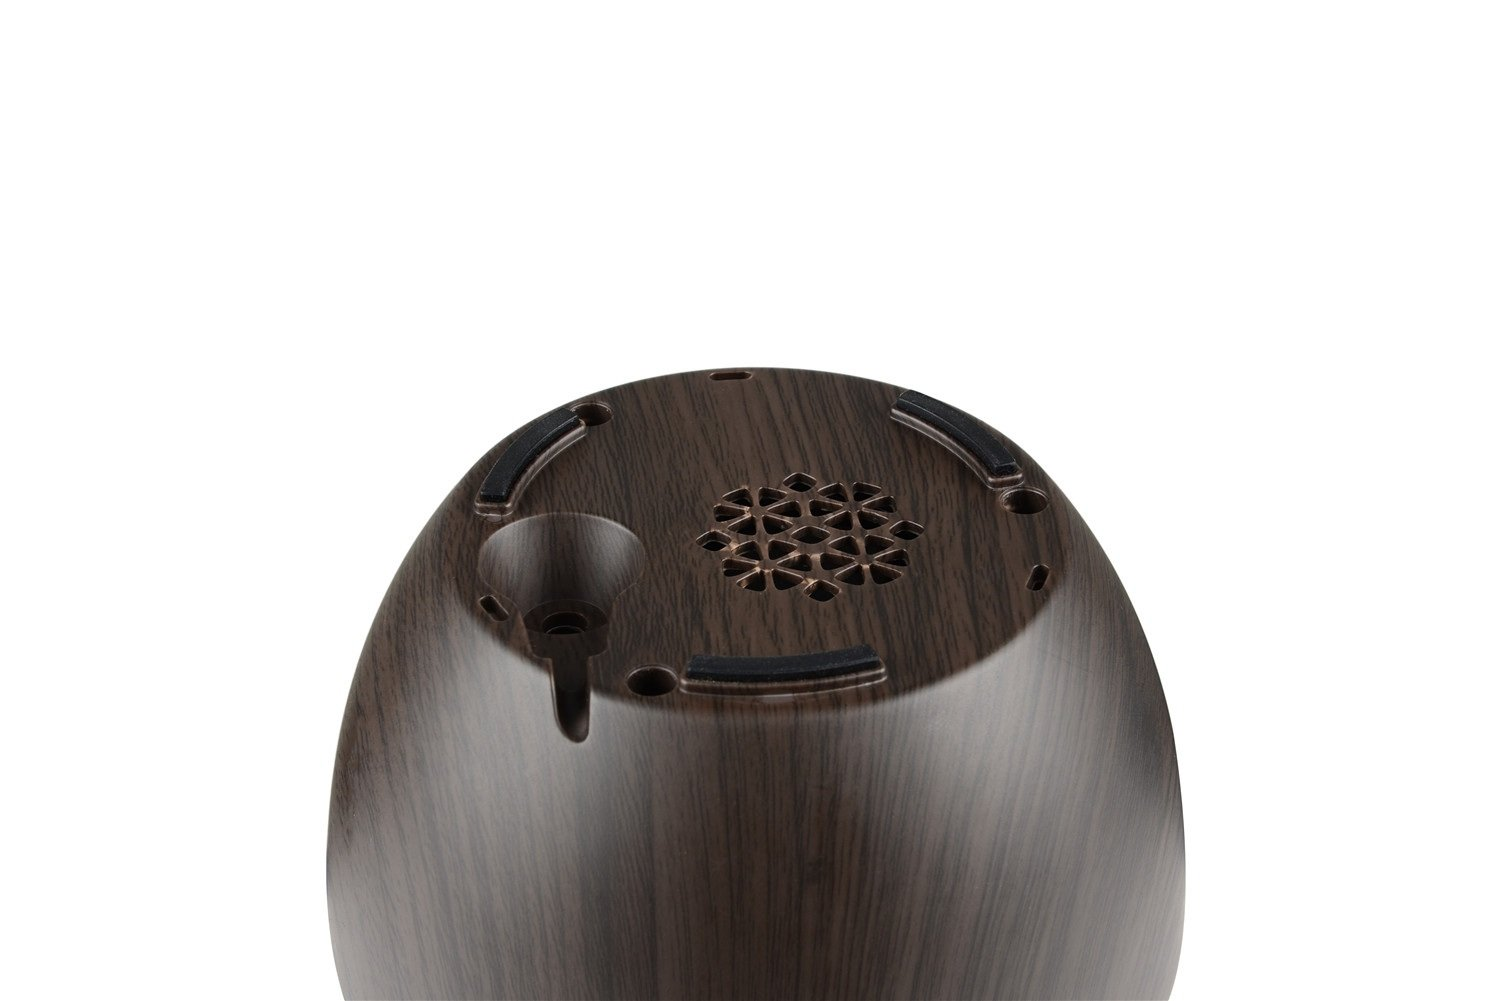 Deerbird 300ML Natural Deep Wood Grain Essential Oil Diffuser Ultrasonic Aromatherapy Diffusers with 7 LED Colorful Lights and Waterless Auto Shut-off by DeerBird (Image #6)